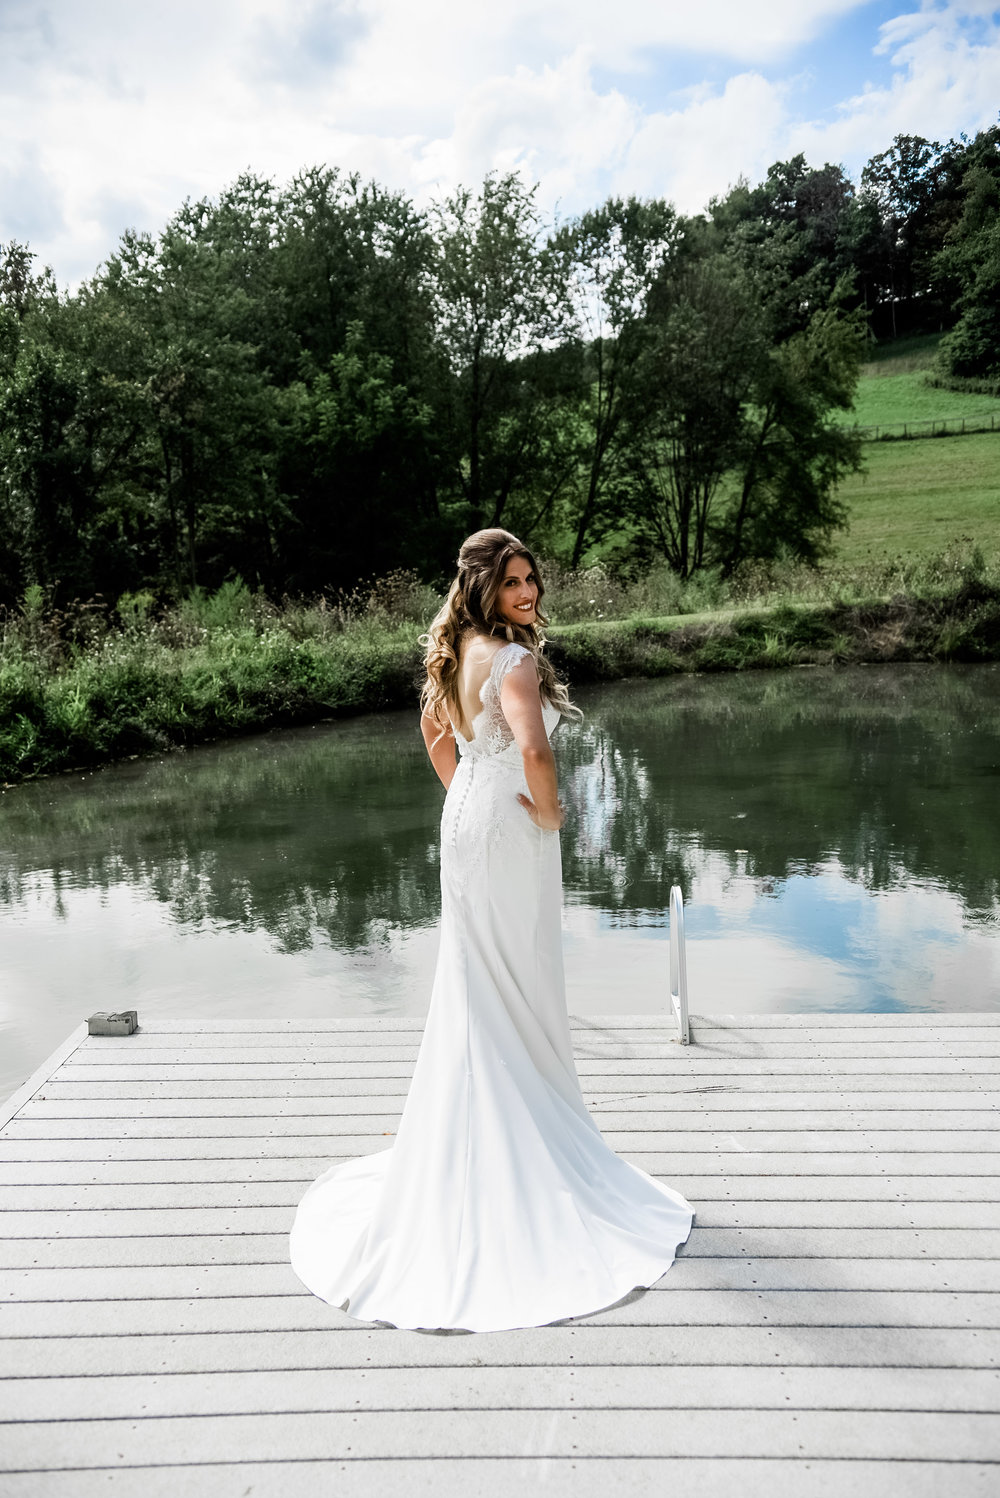 Bride poses for wedding photos in wedding dress for Pittsburgh wedding planned by Exhale Events. Find more inspiration at exhale-events.com!